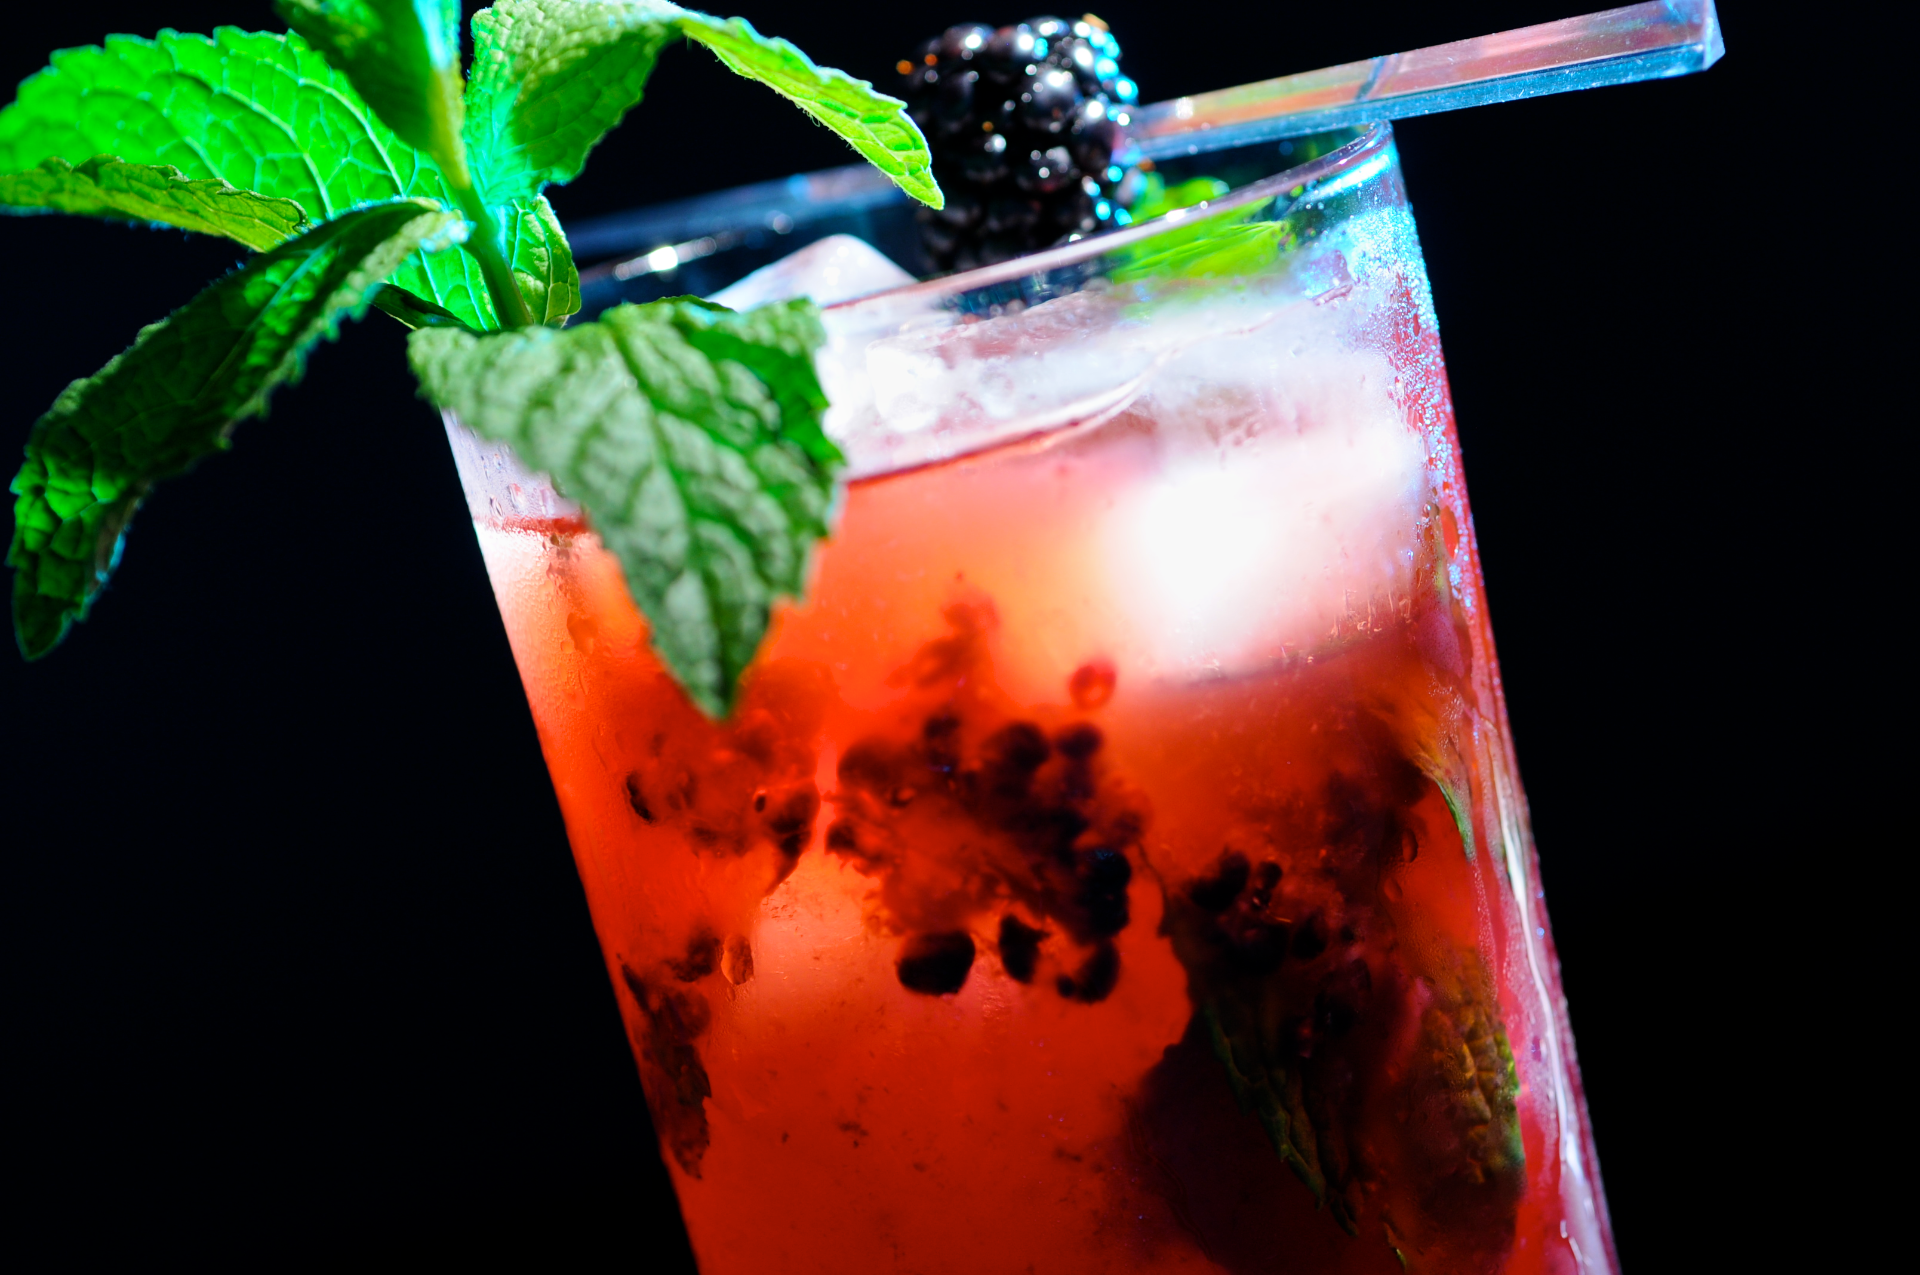 A wonderfully light, slightly tart, and refreshing rum drink flavored with mint, lime juice, and fresh blackberries.